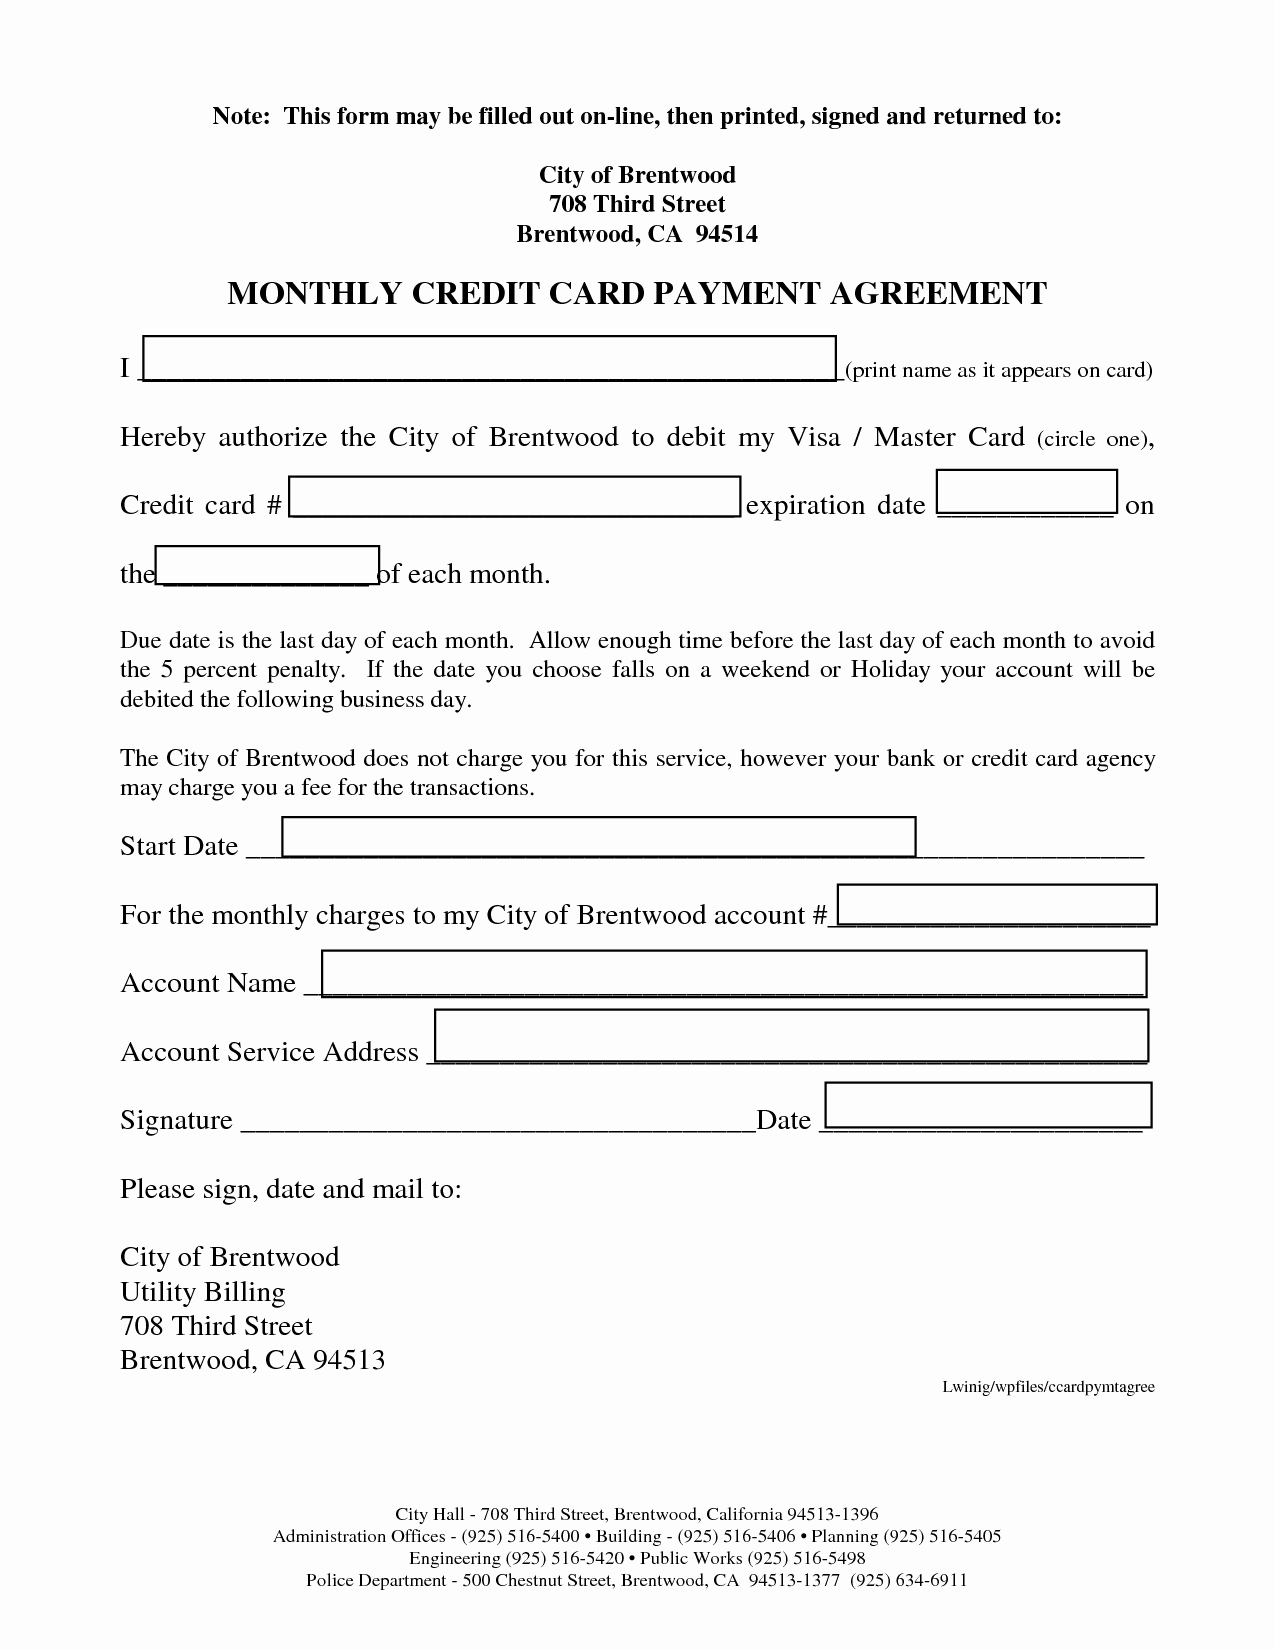 Employee Credit Card Agreement Template Fresh Employee Credit Card Agreement